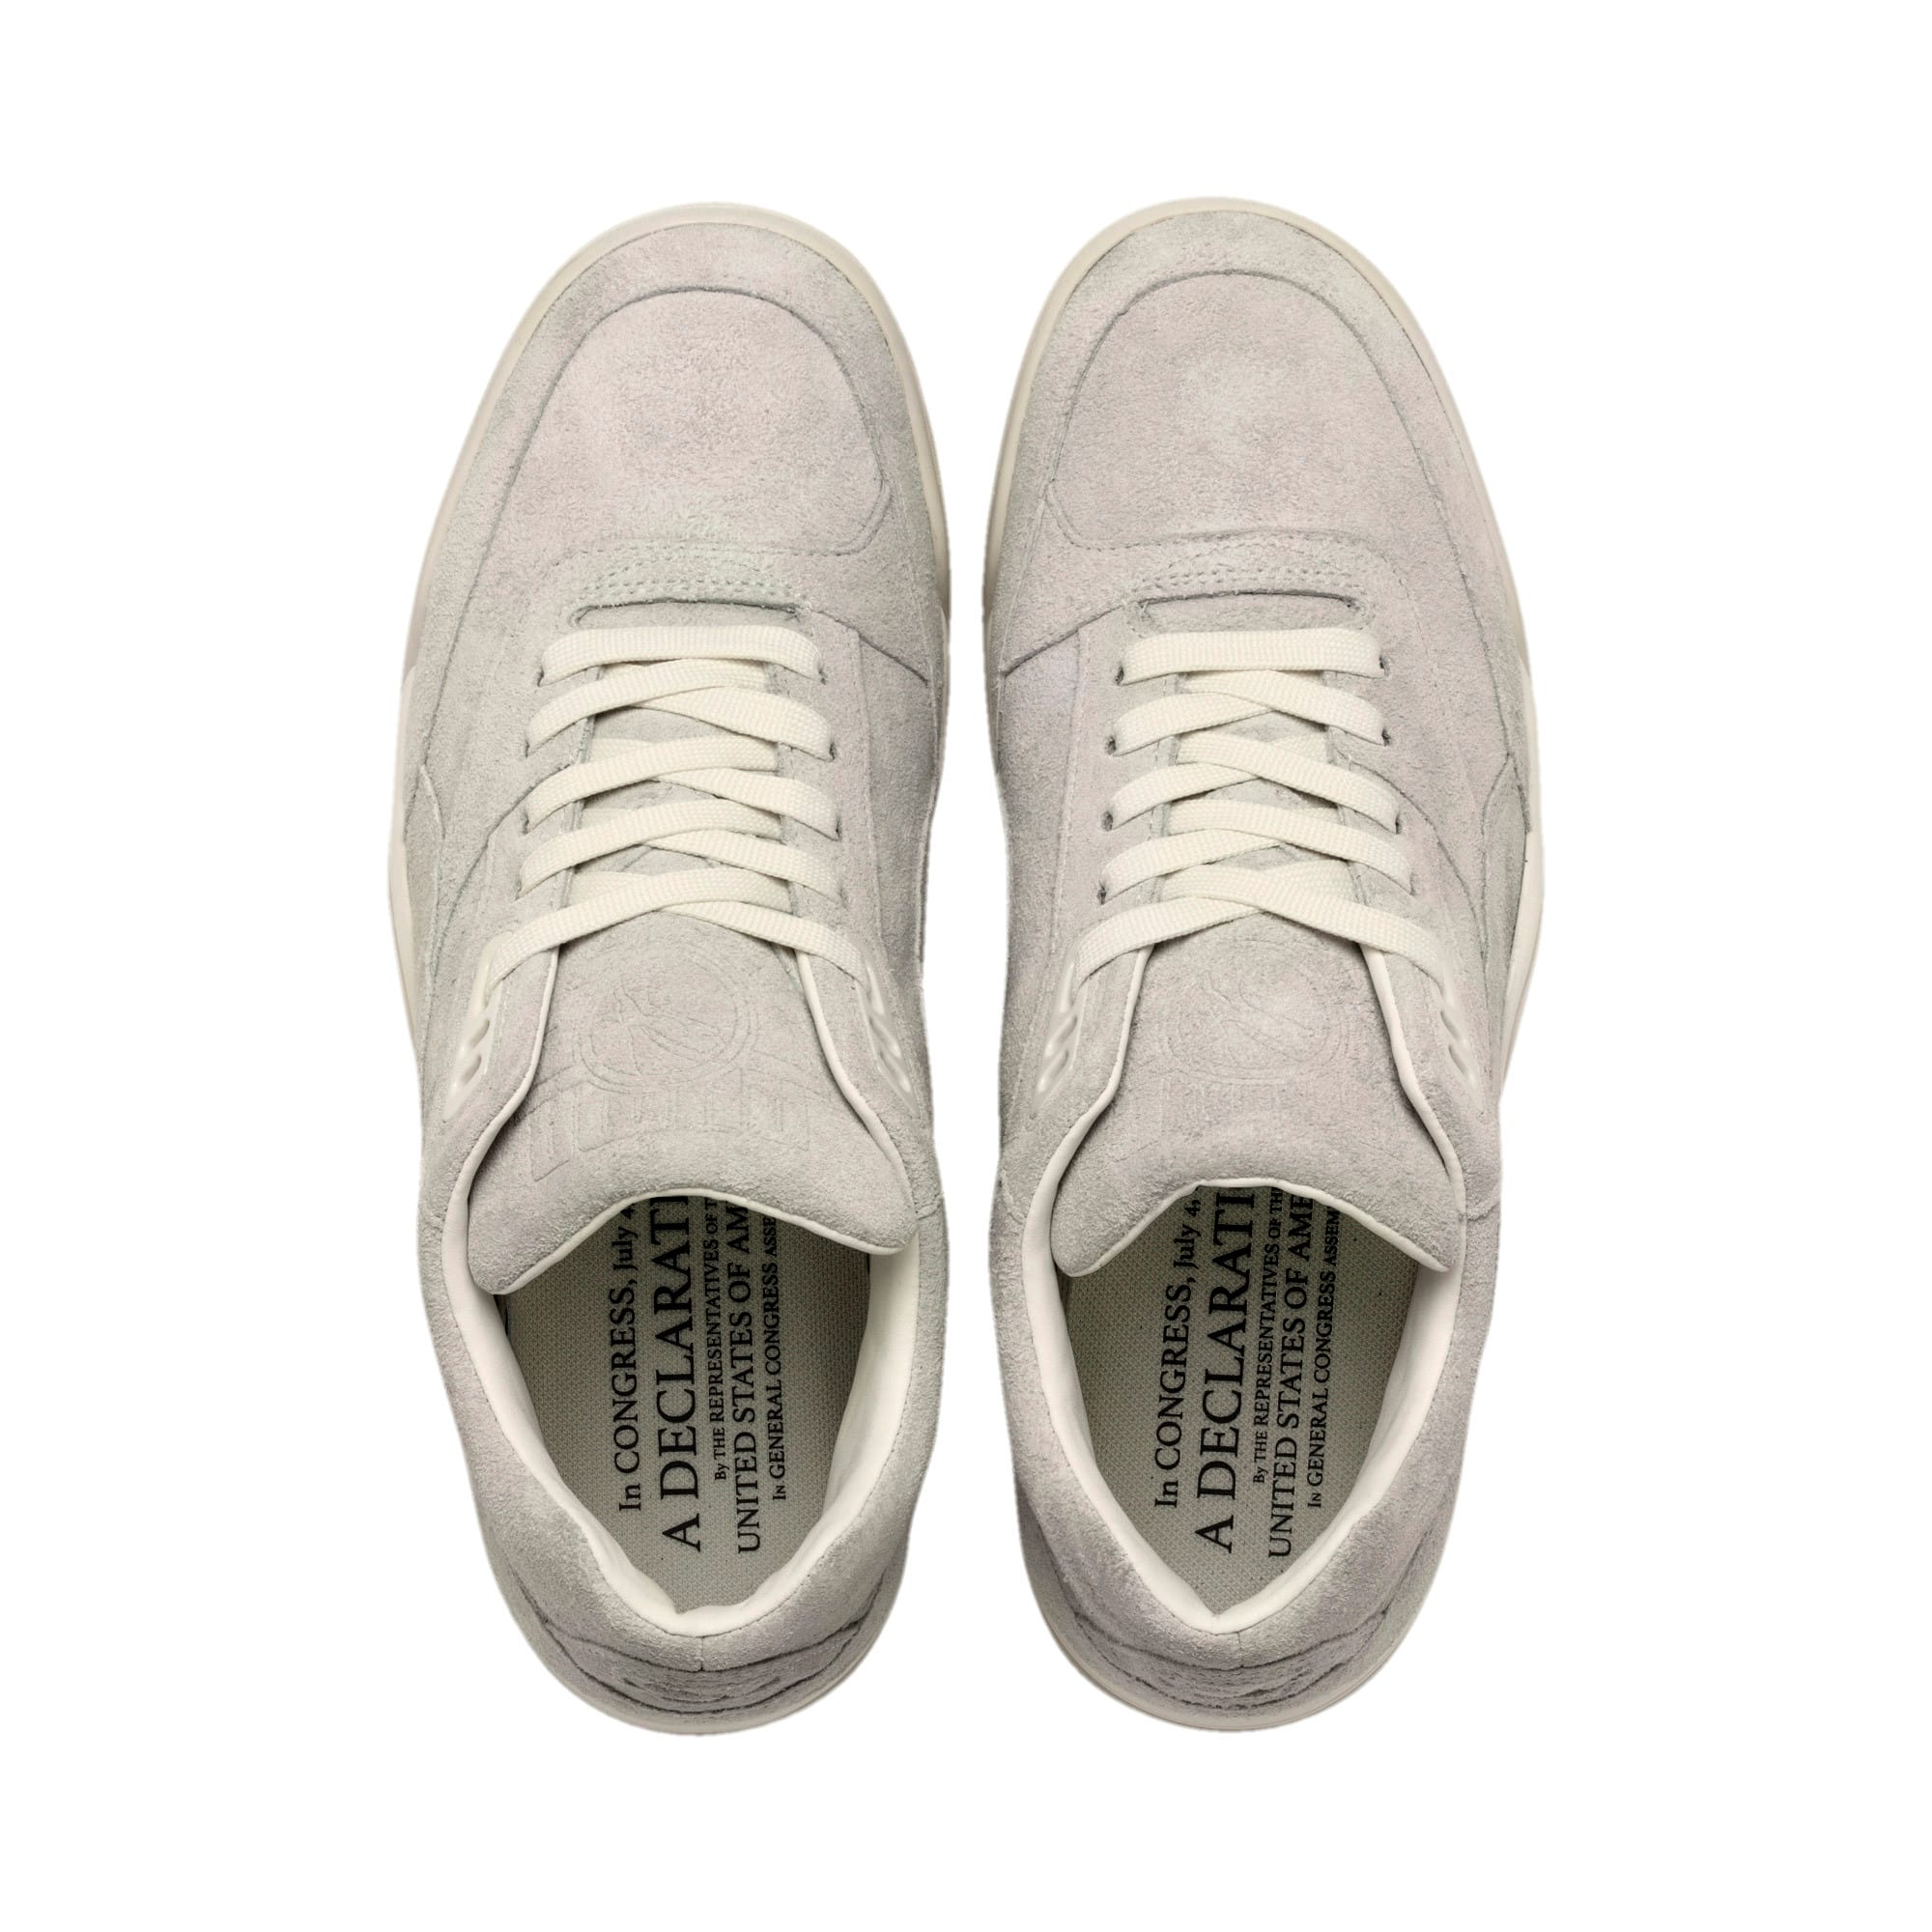 Thumbnail 8 of Palace Guard 4th of July Trainers, Whisper White-Puma Black, medium-IND